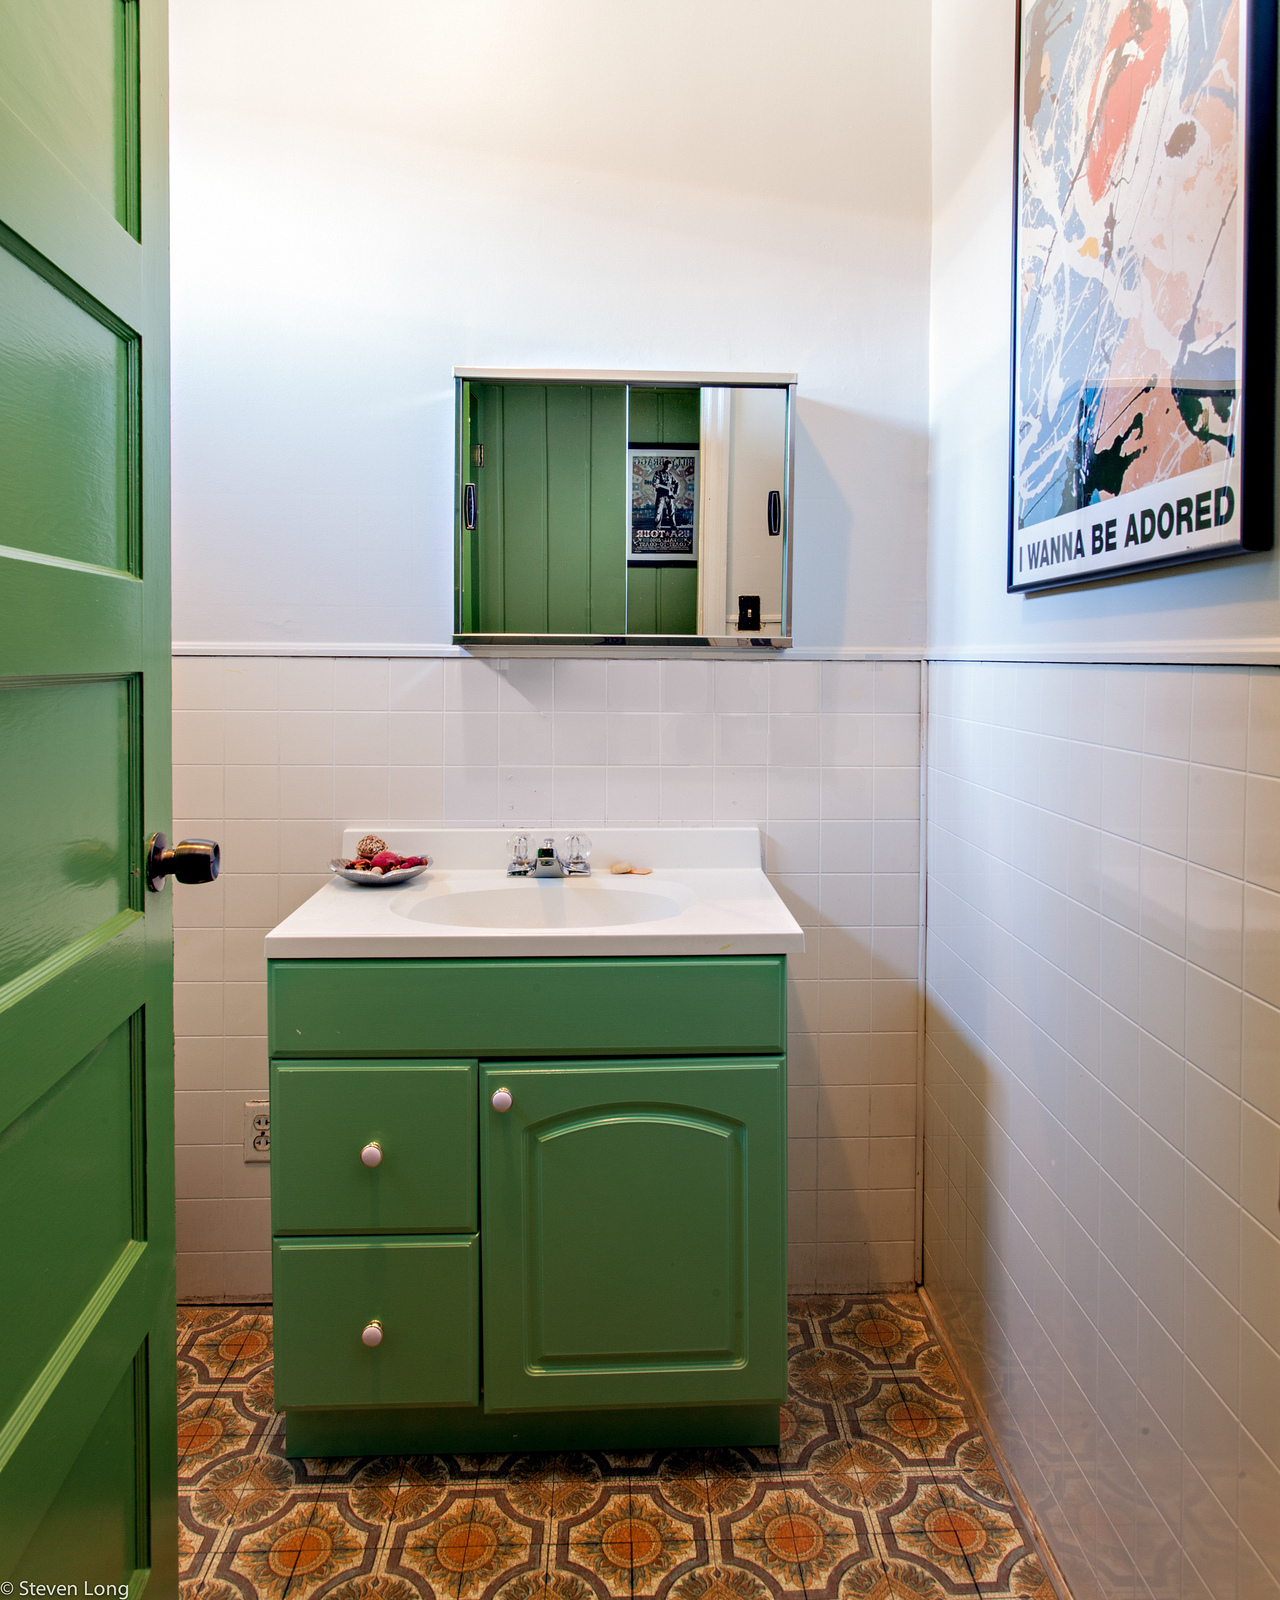 interior-white-sink-on-the-white-counter-top-placed-on-the-green-wooden-storage-and-drawers-placed-on-the-brown-tile-flooring-creating-exciting-look-through-vintage-bathroom-sinks